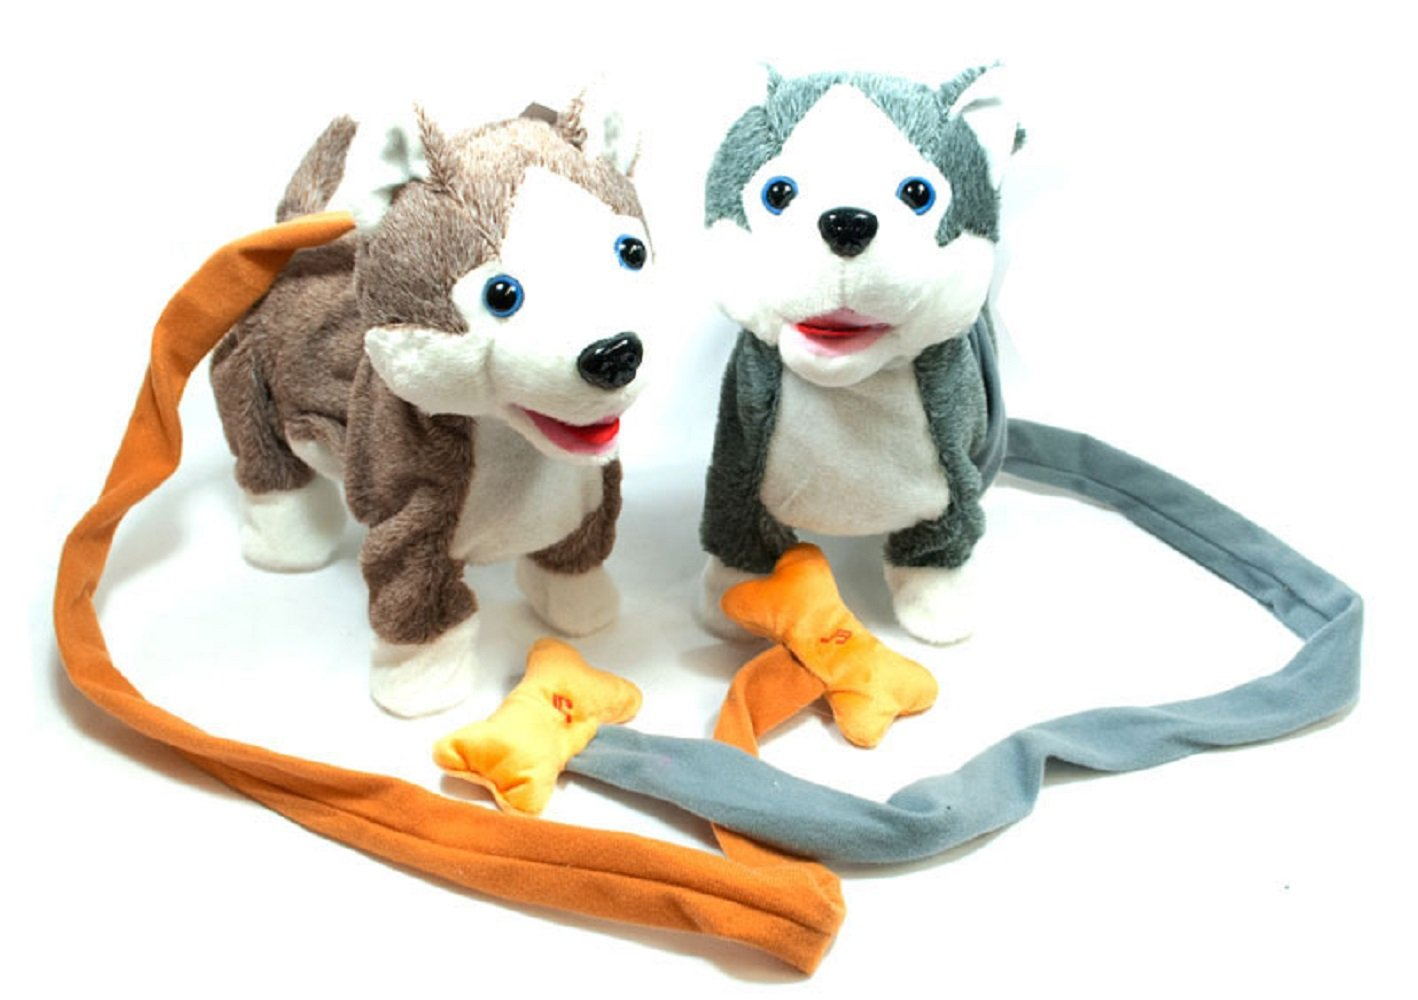 Husky bluee LilPals Live Action Plush Walking Pets Electronic Leash Remote Control (RC) with Music Available in Brown Horse, Dalmatian Dog, Pink Husky, bluee Husky Or Grey Husky